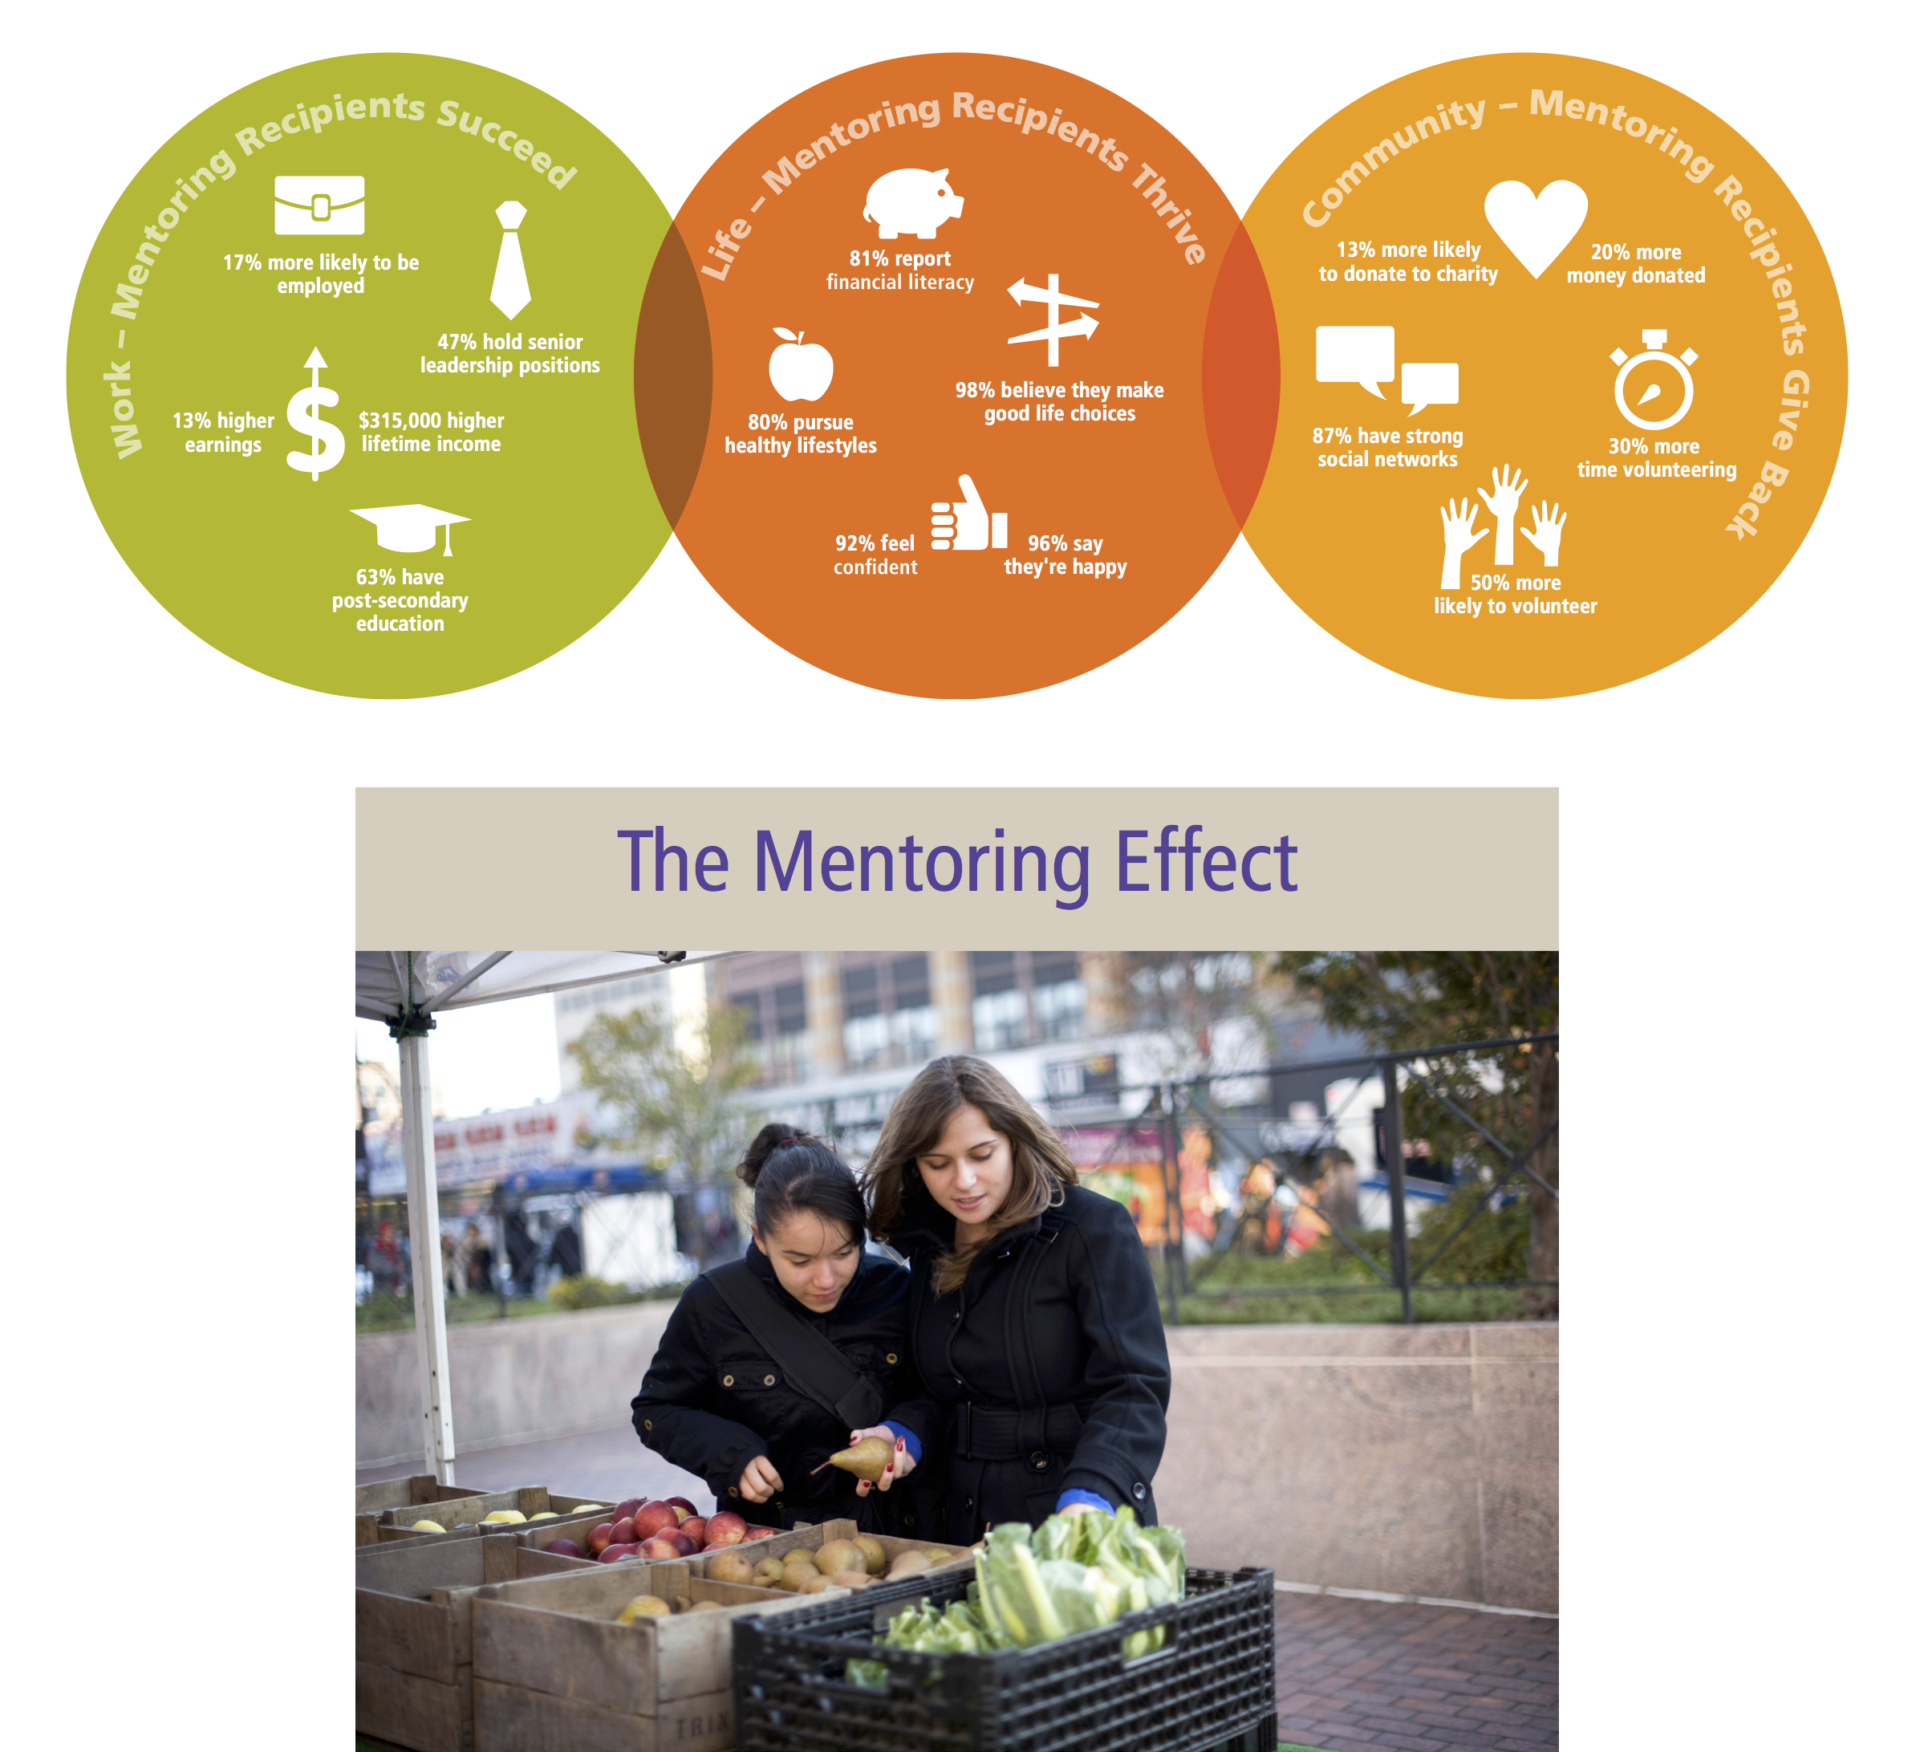 Mentoring Effect - Big Brothers Big Sisters of Canada